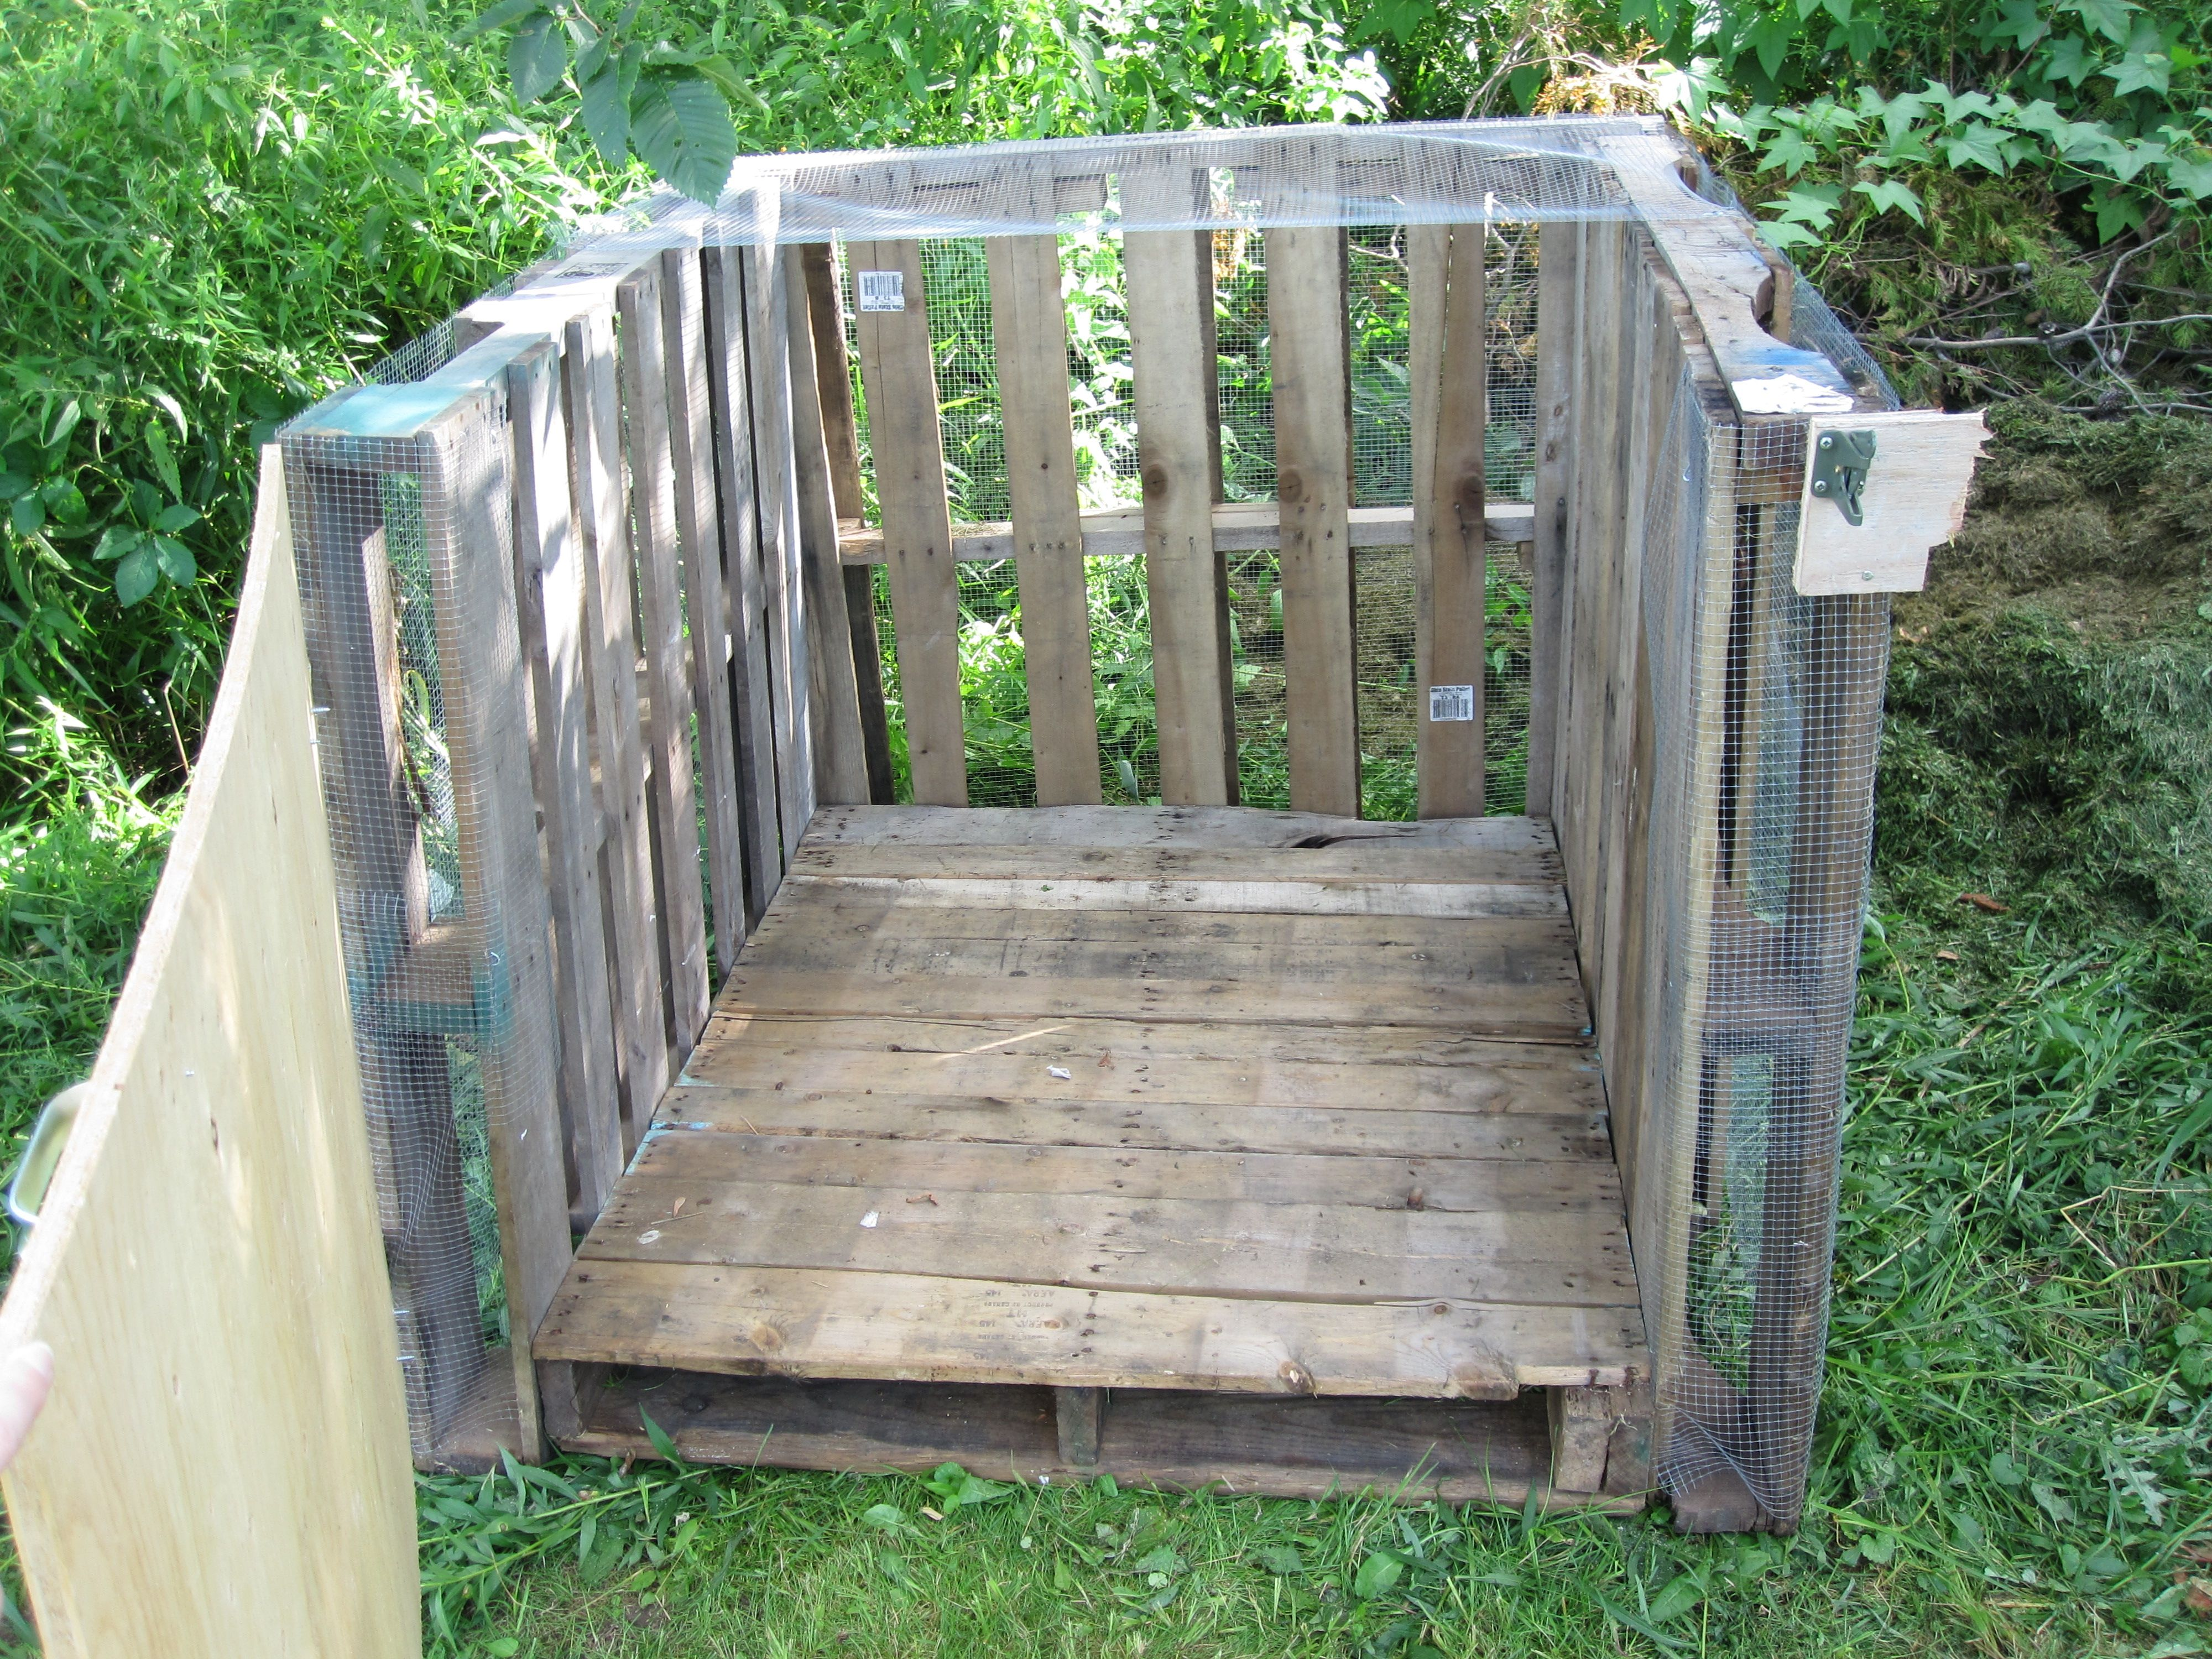 DIY pick up pallets (for free) from a big box store or